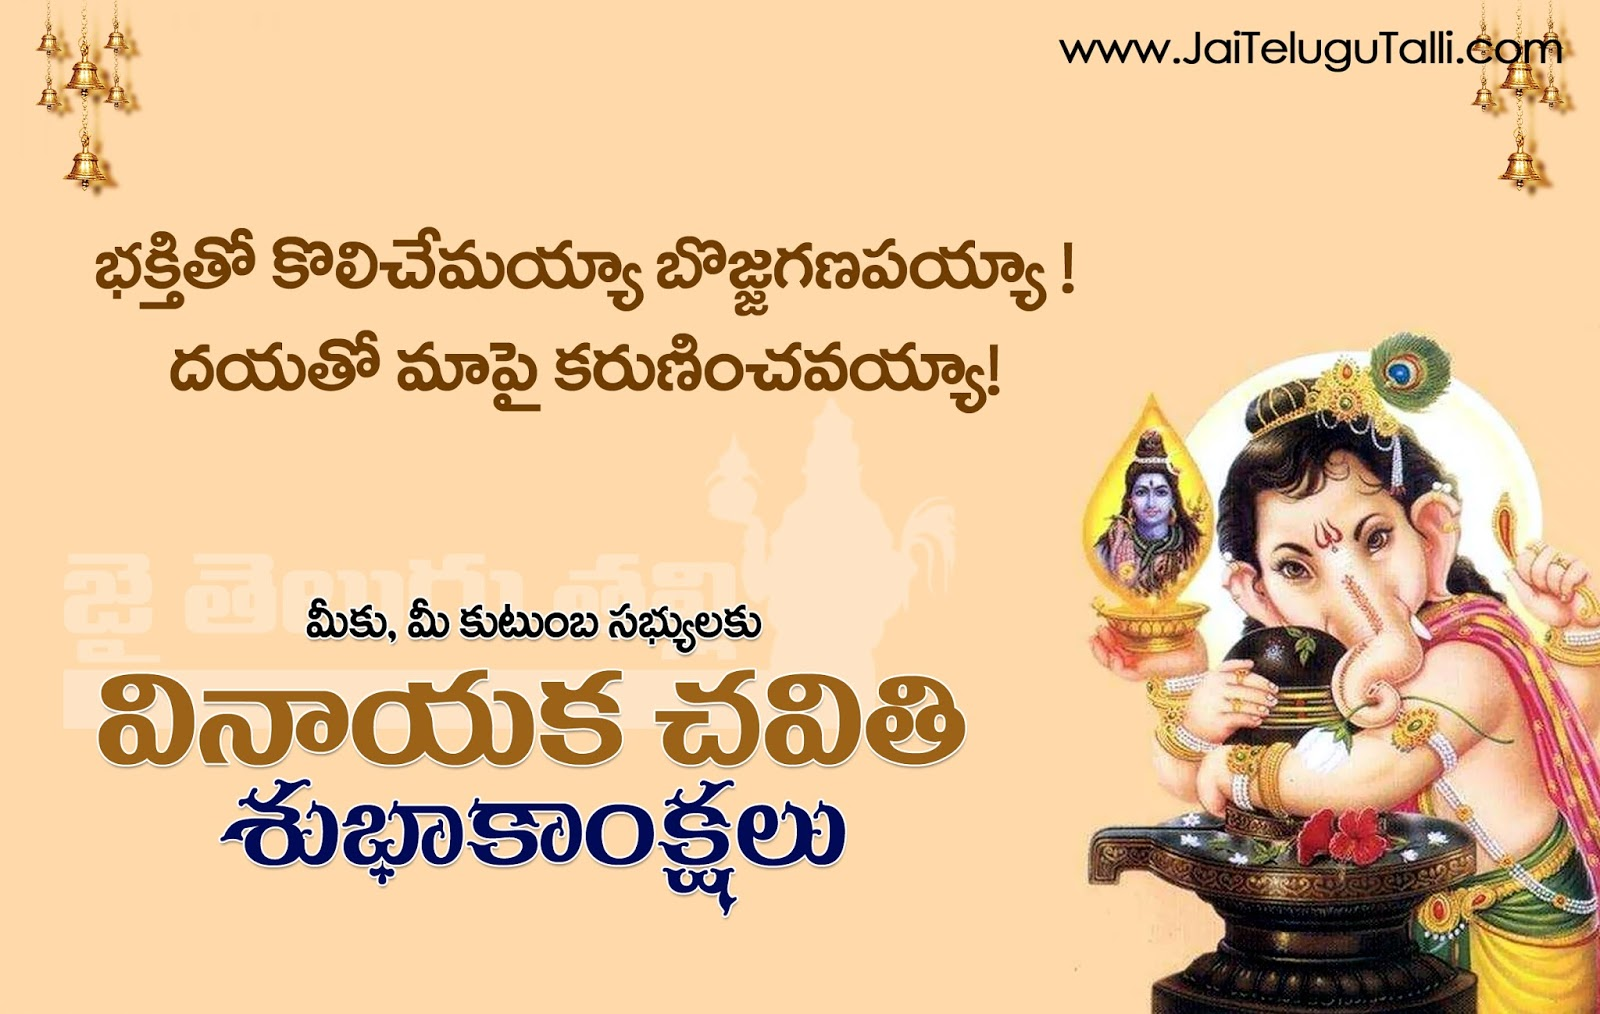 Best Greetings And Pictures About Happy Vinayaka Chavithi Festival